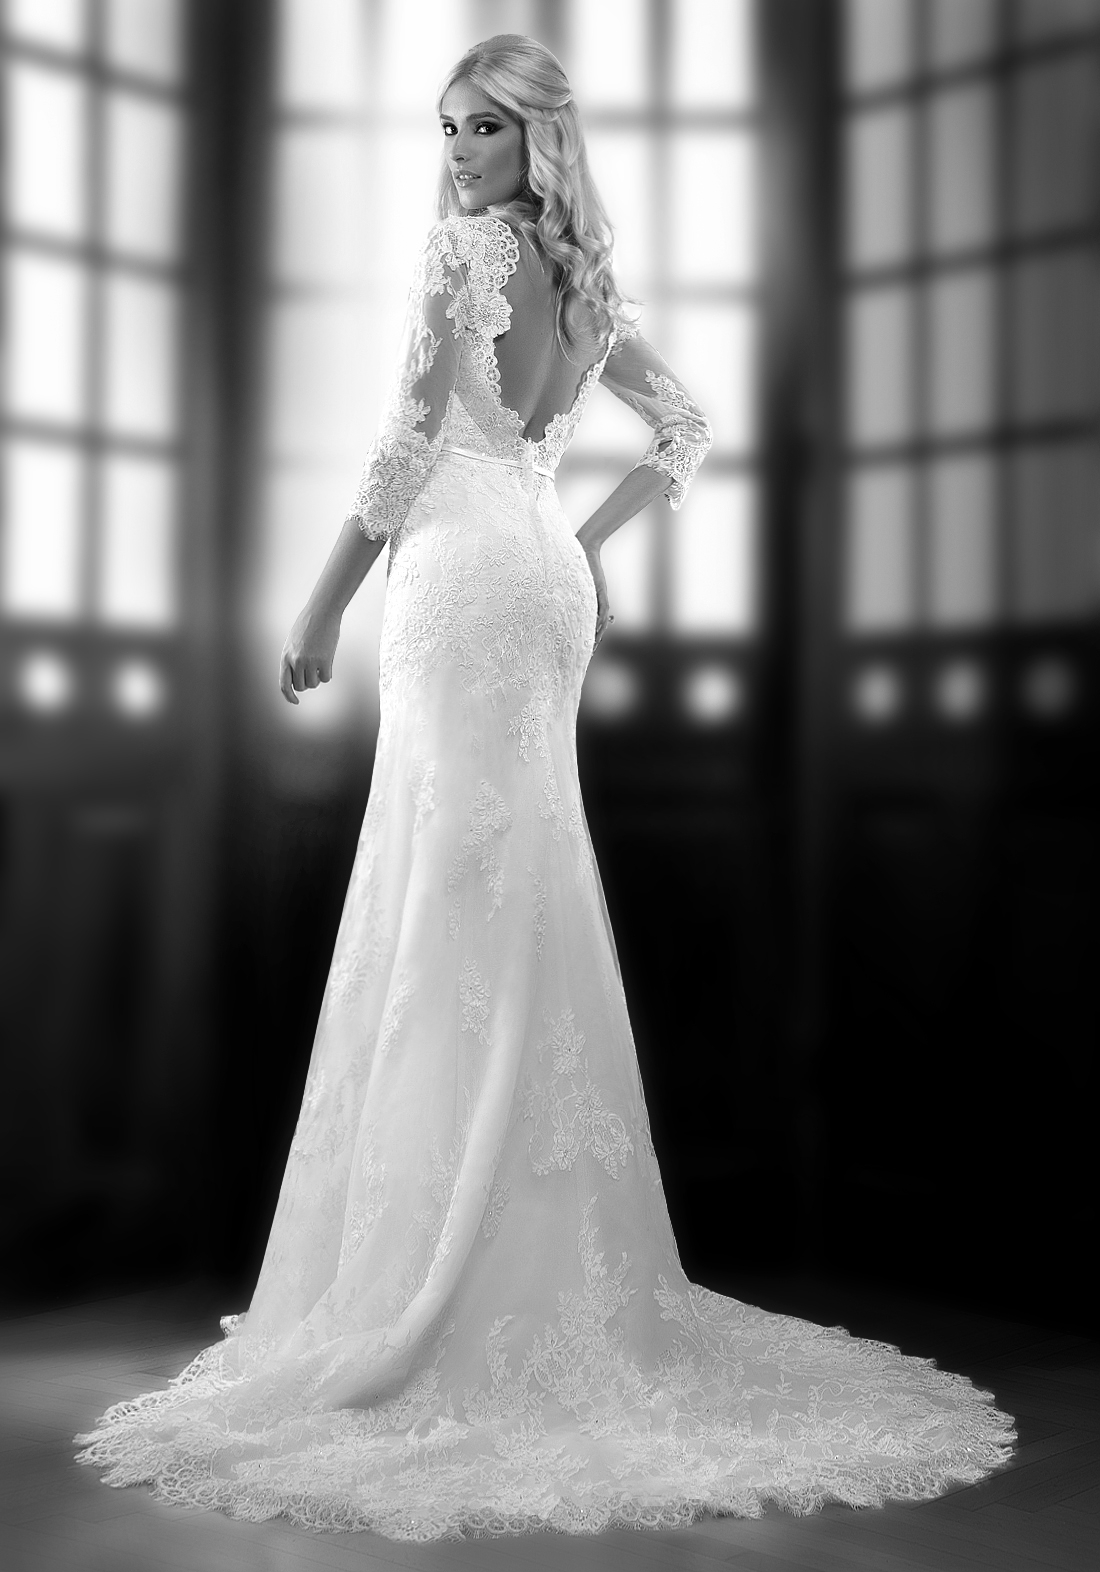 bien-savvy-wedding-dresses-2014-collection-9-01232014